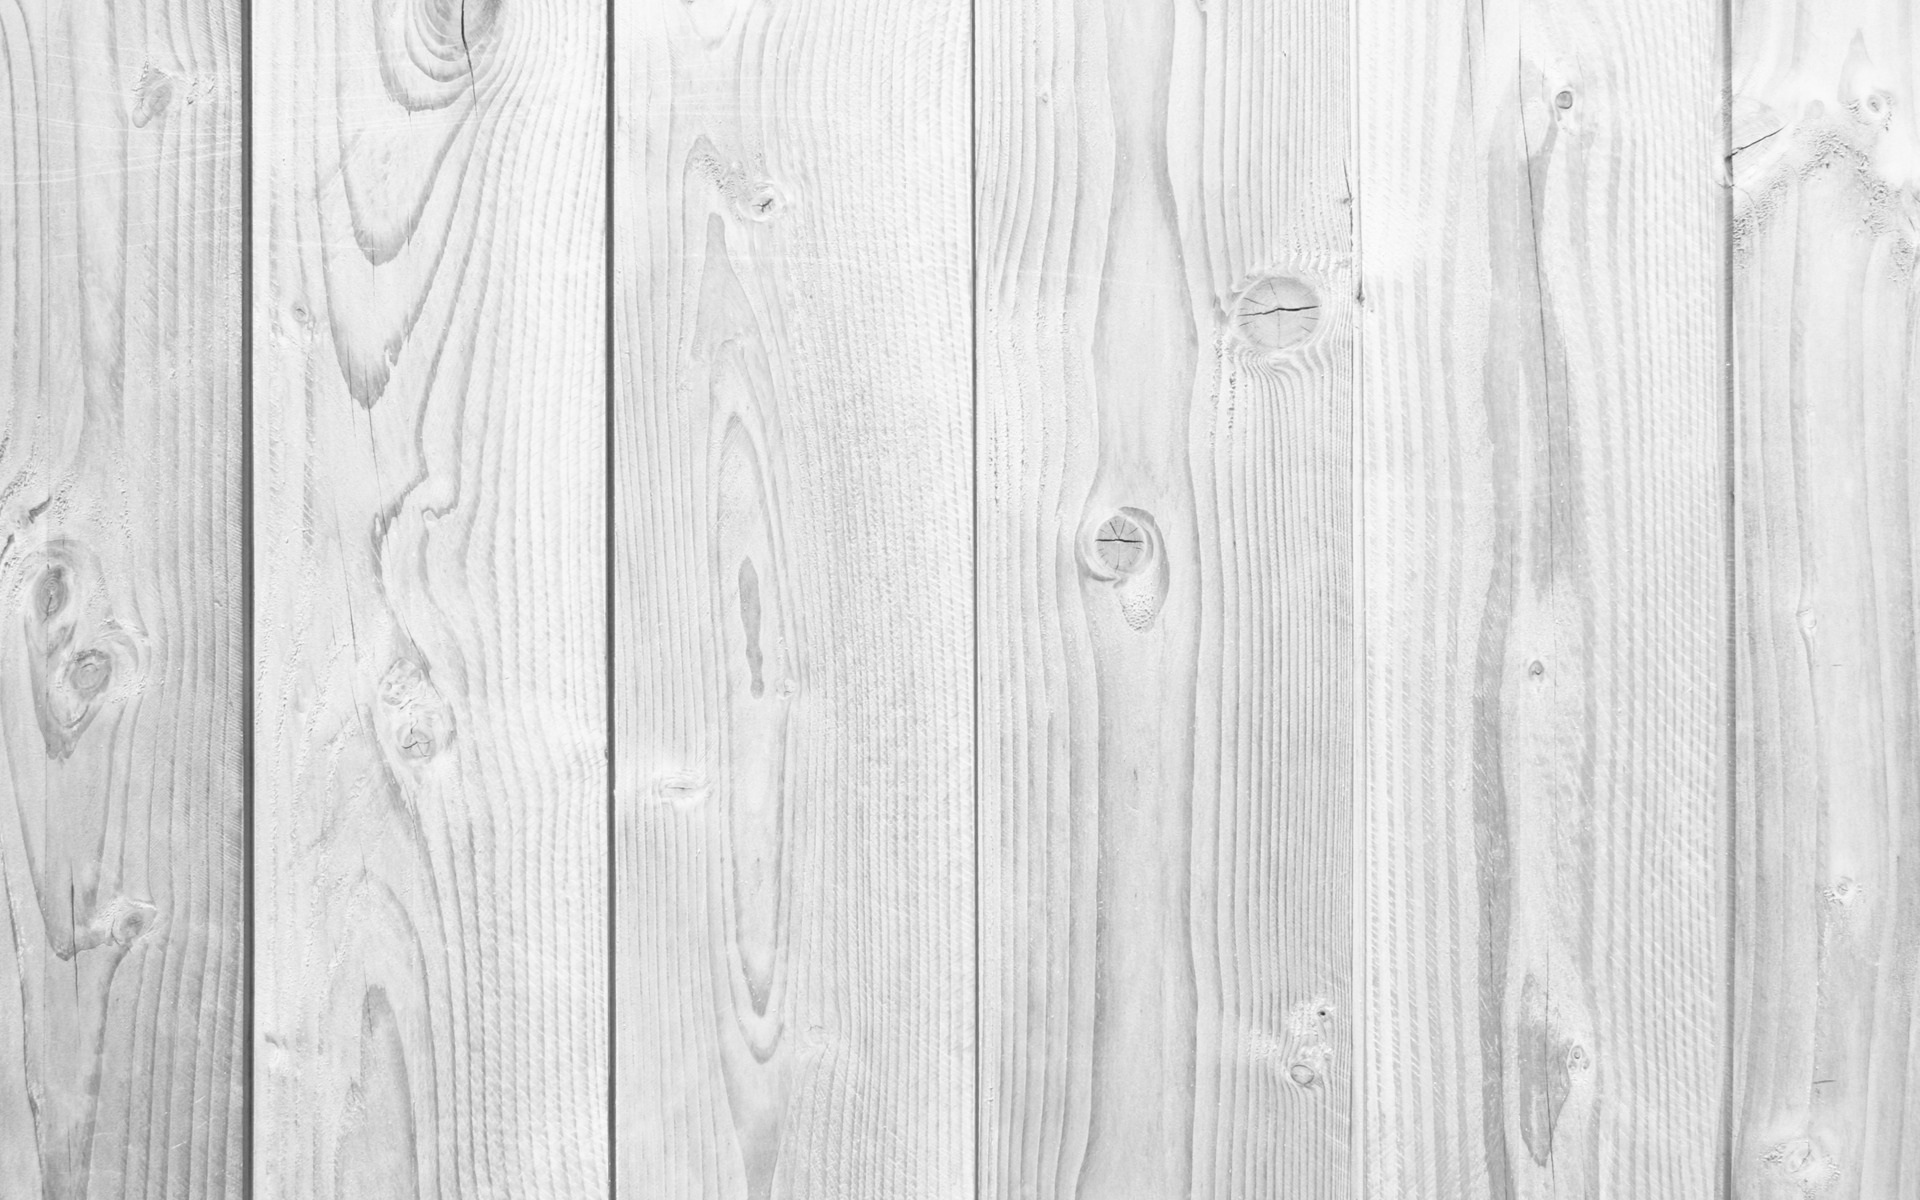 Free stock photo of wood pattern texture wall